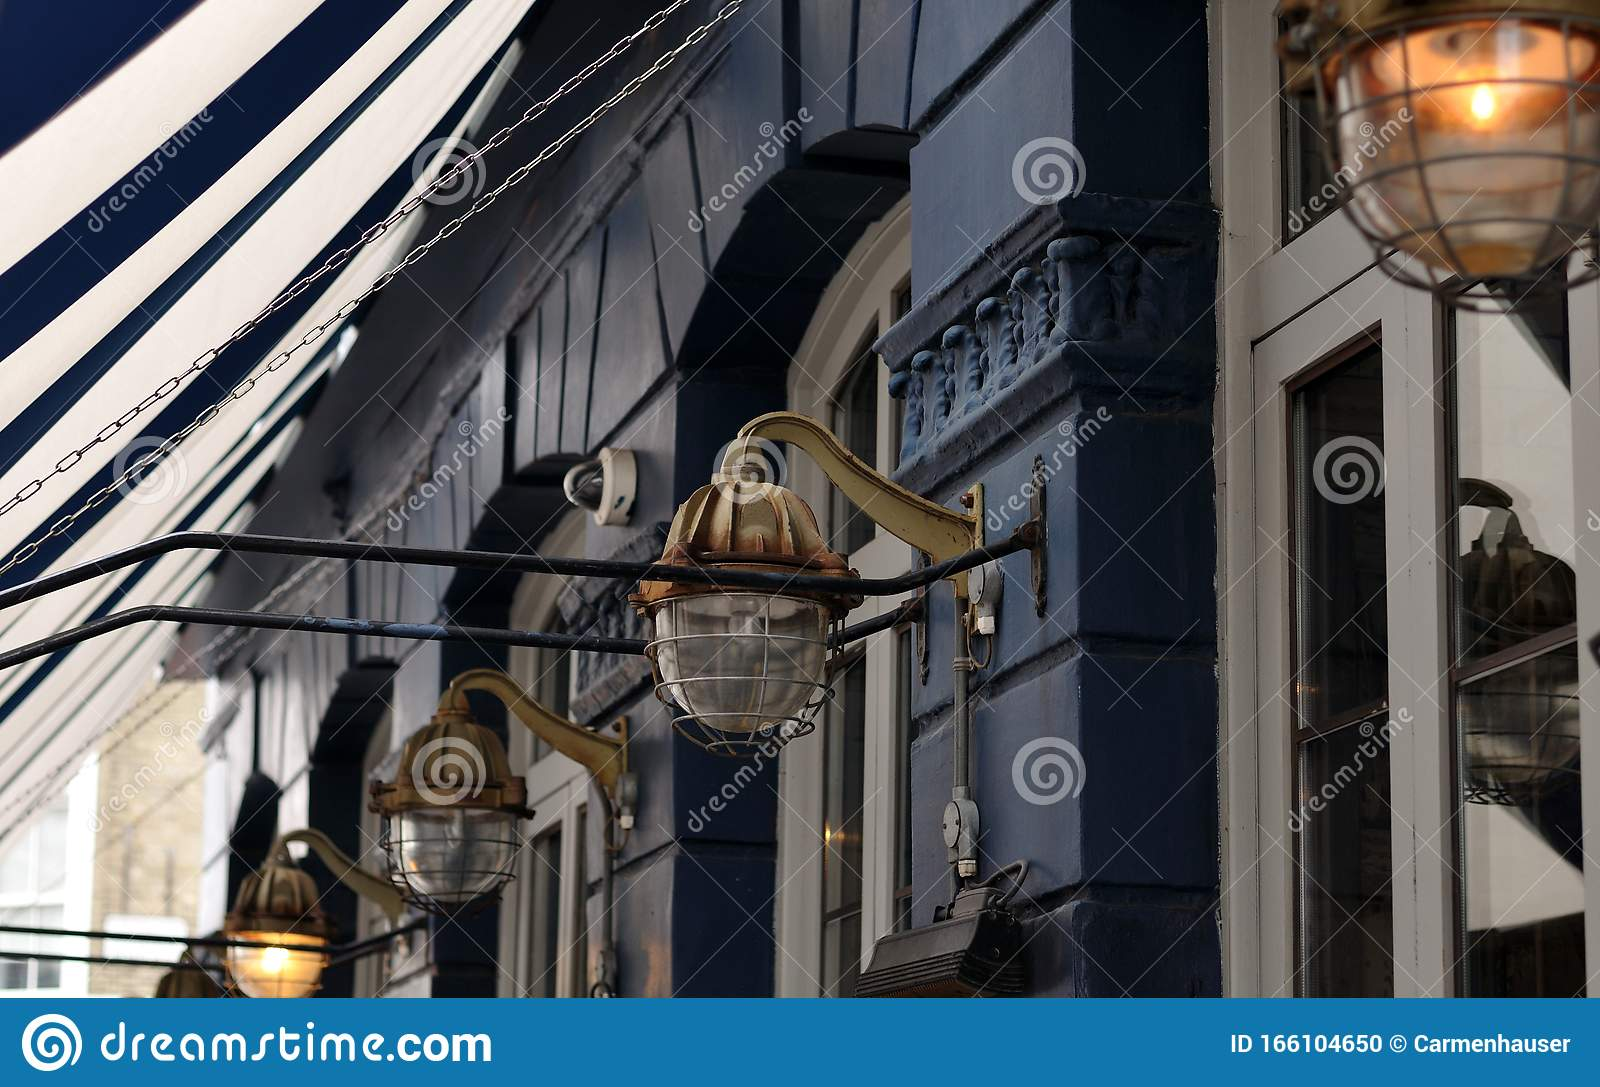 221 Old Metal Awning Photos Free Royalty Free Stock Photos From Dreamstime